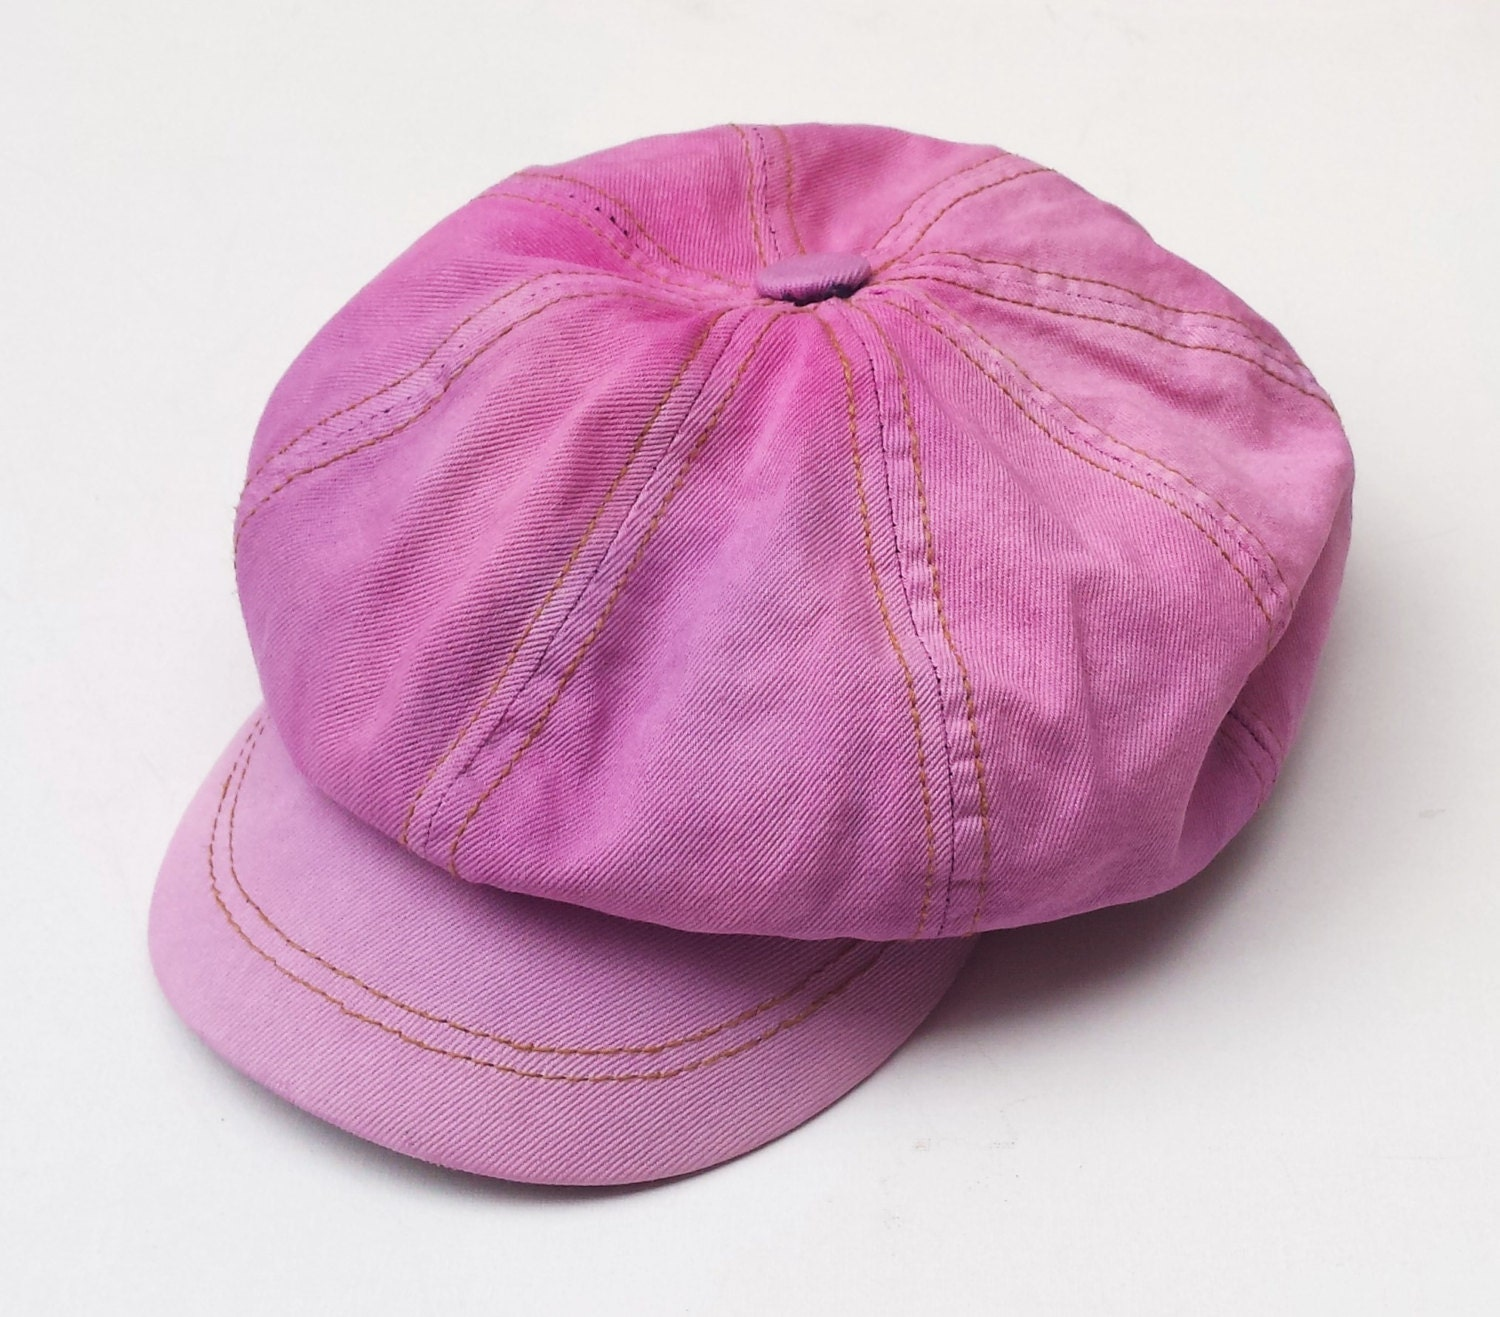 womens hat pink lavender denim baker boy hat cap one size